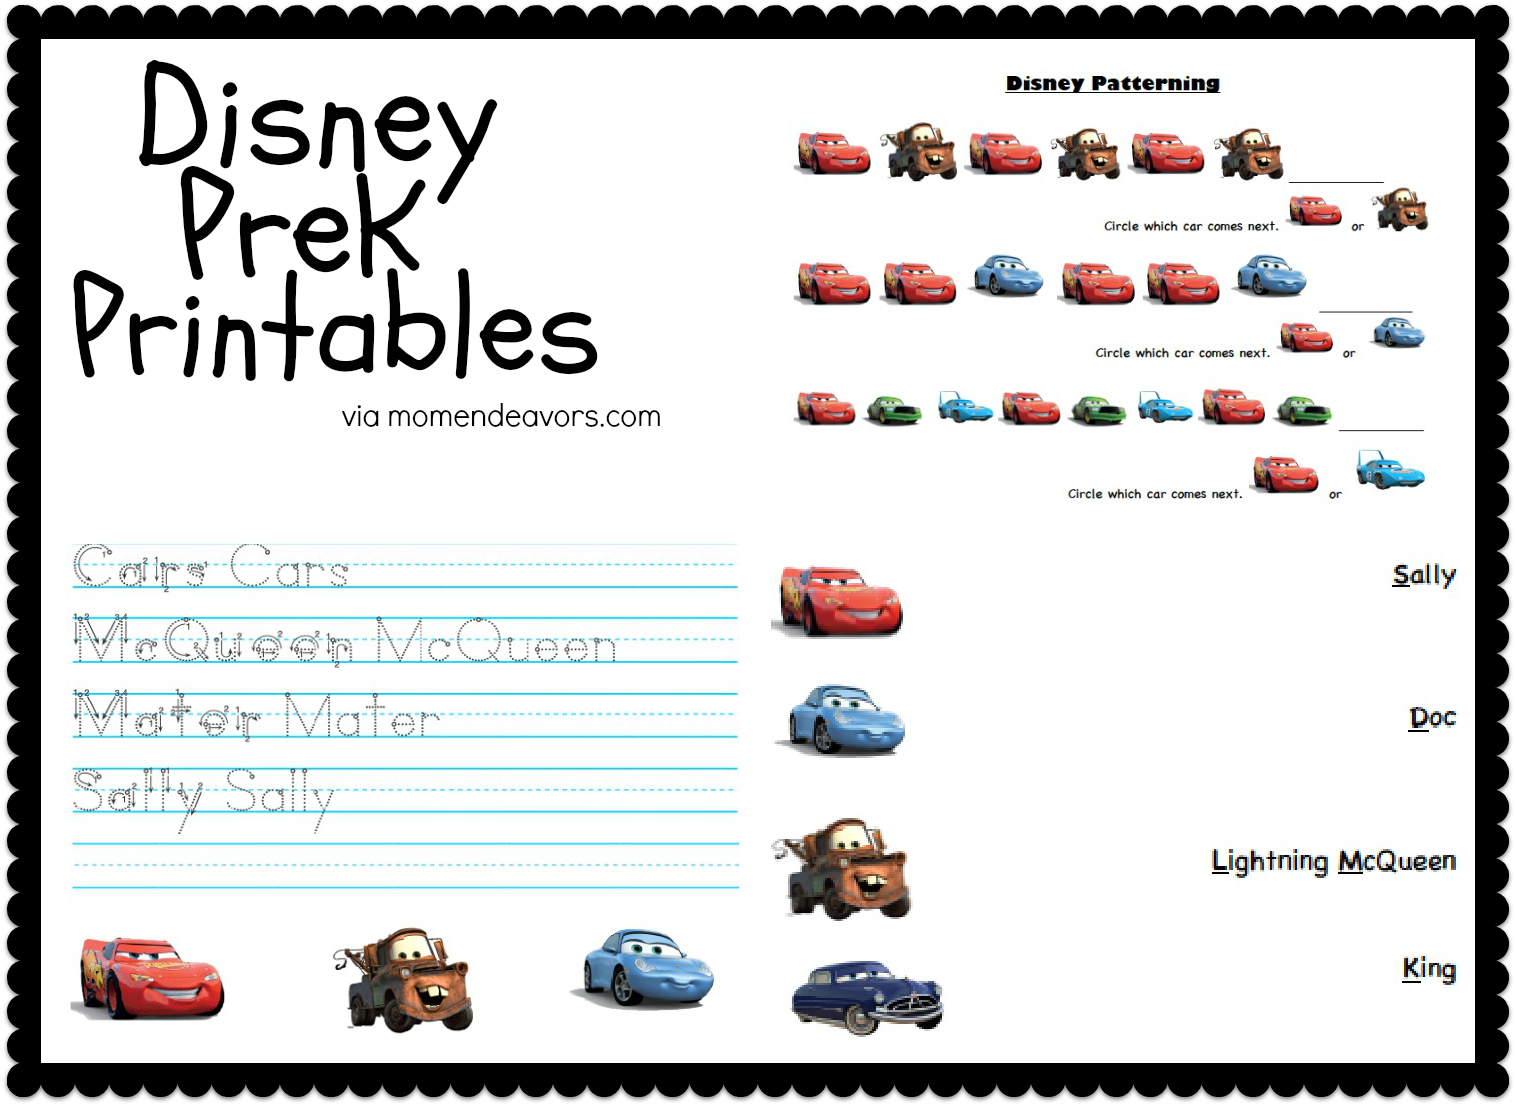 4 Images of Disney Cars Printable Activity Pages